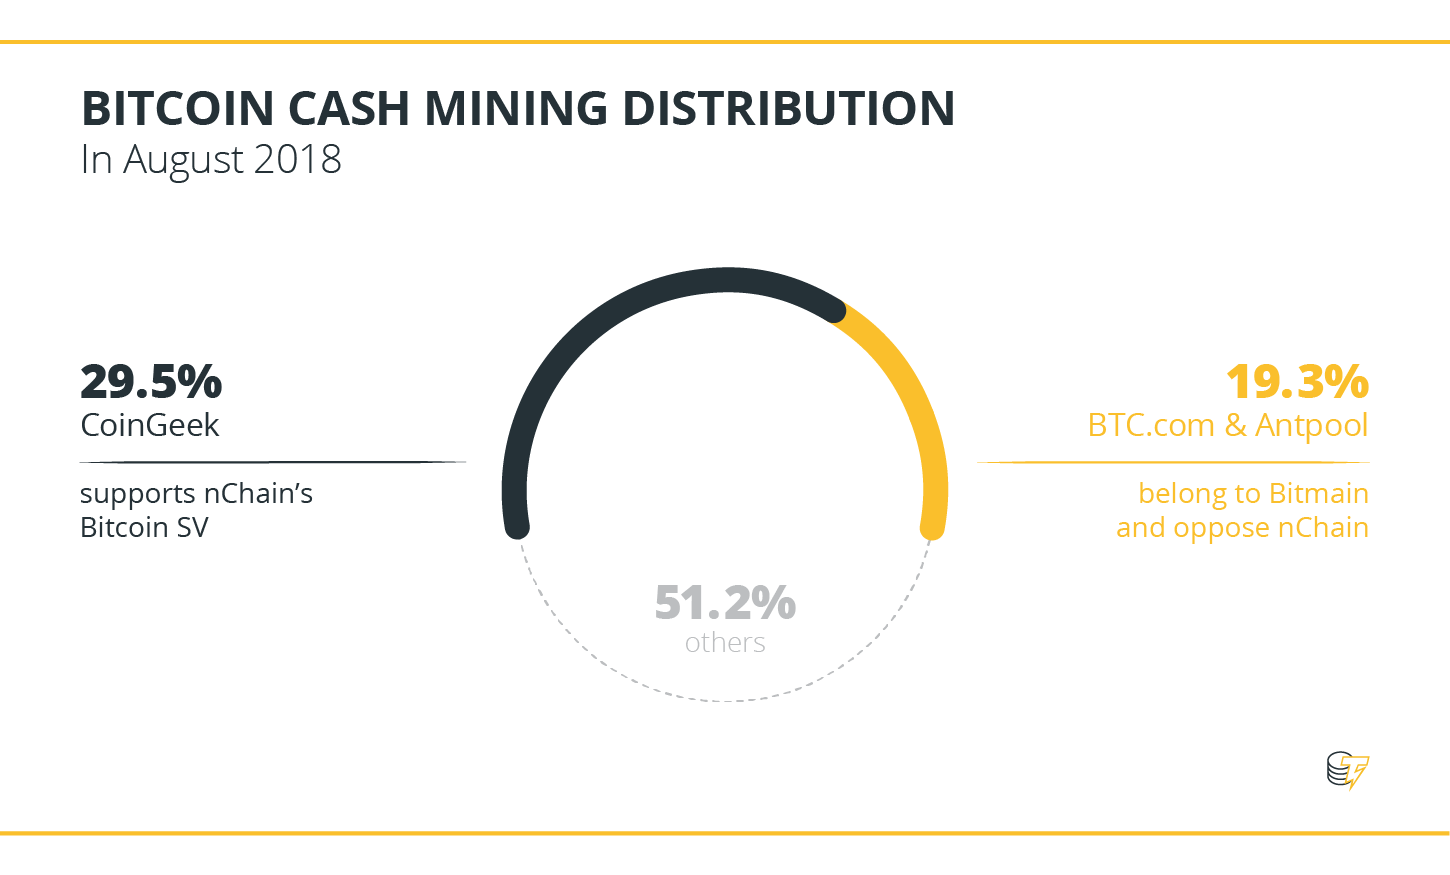 Bitcoin Cash Mining Distribution